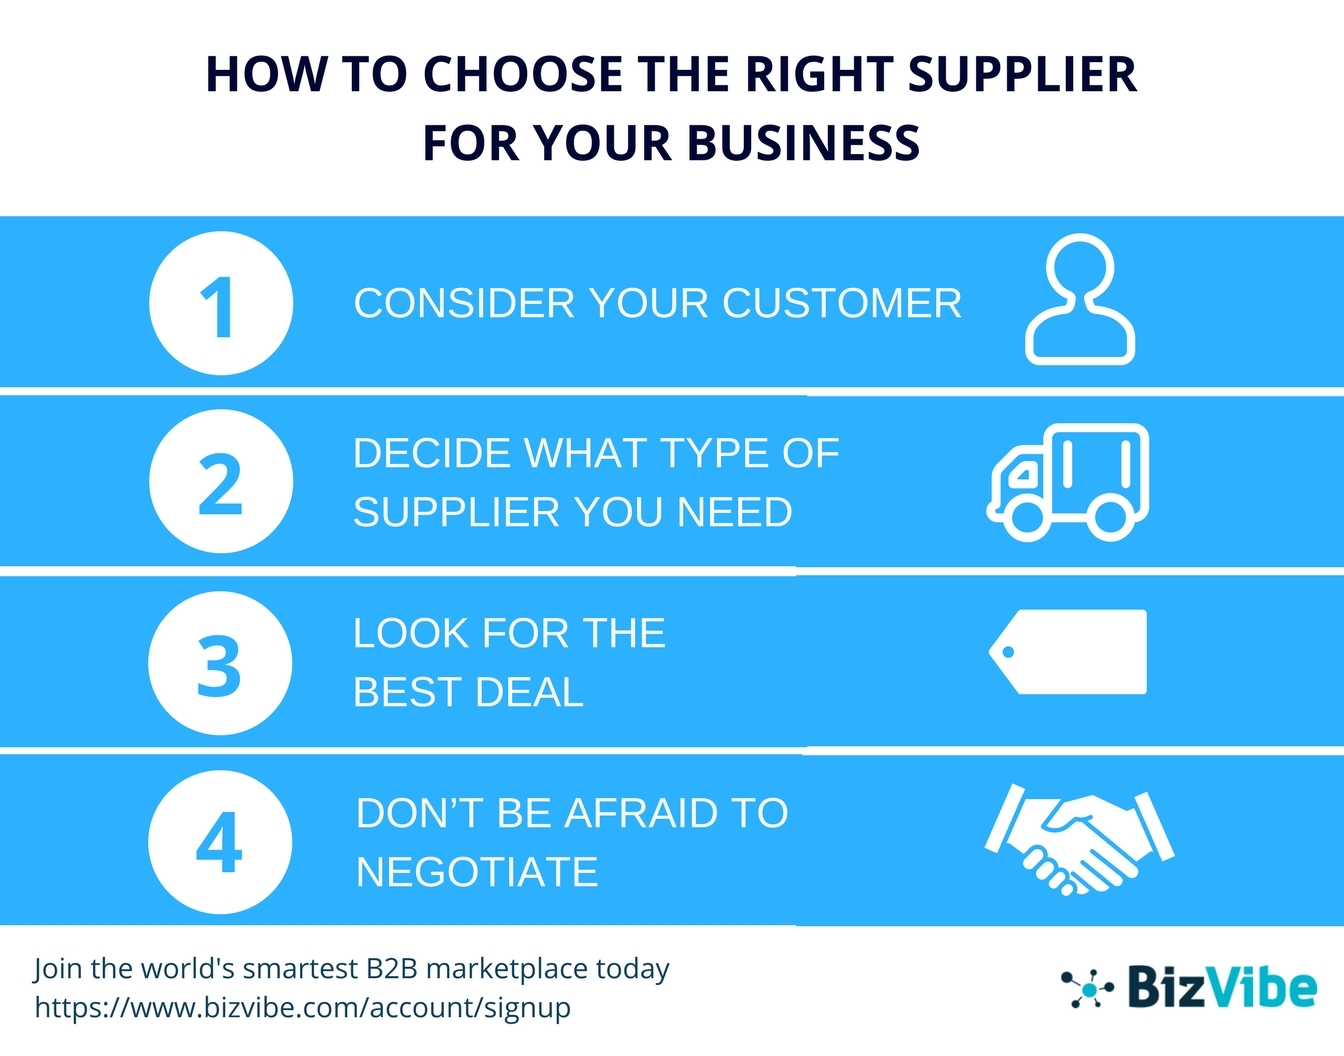 BizVibe has announced their guide to helping companies find the right supplier. (Graphic: Business Wire)